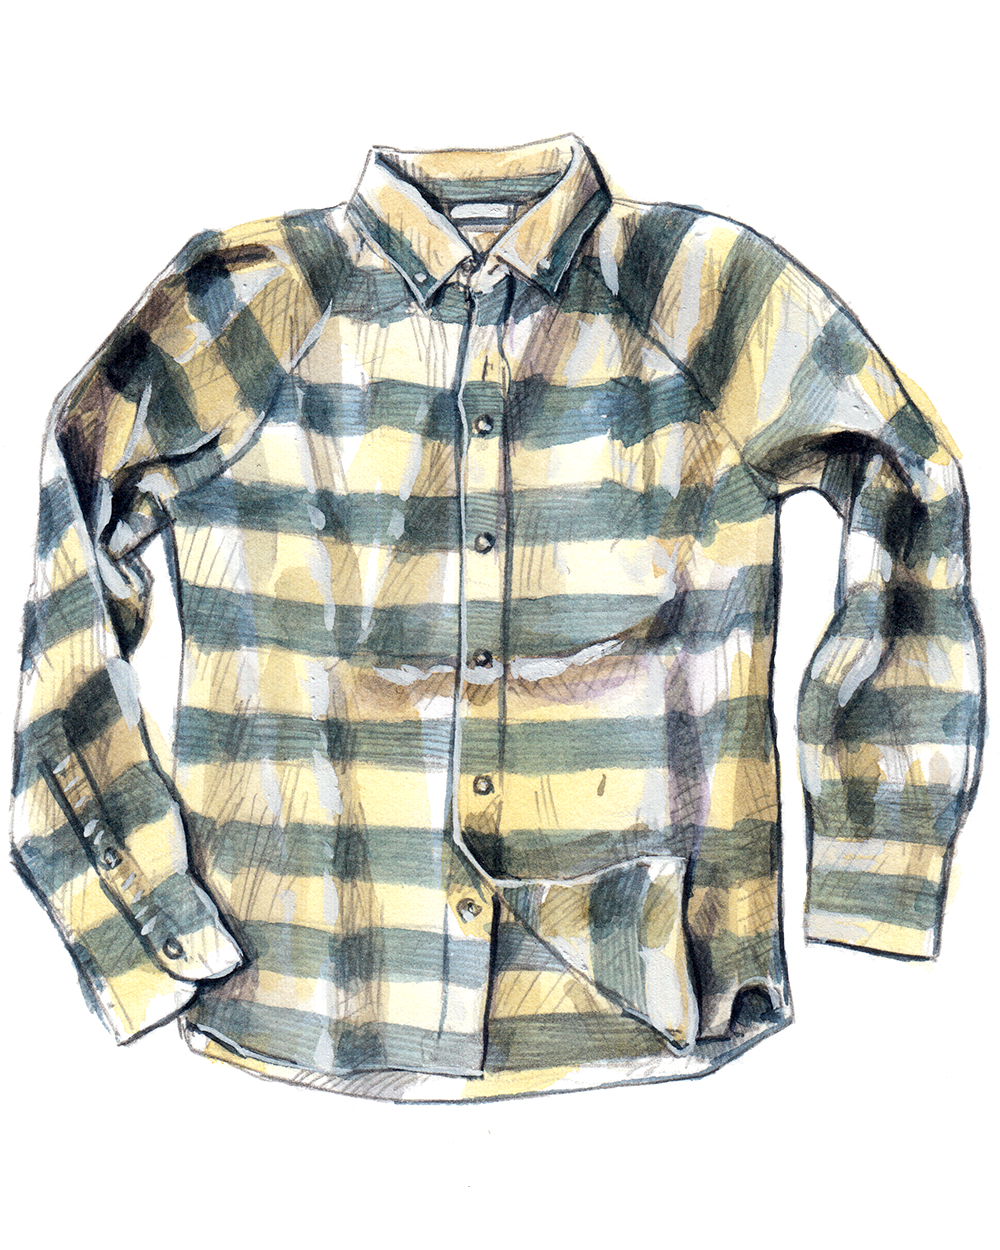 ONS Clothing linen shirt with raglan sleeves